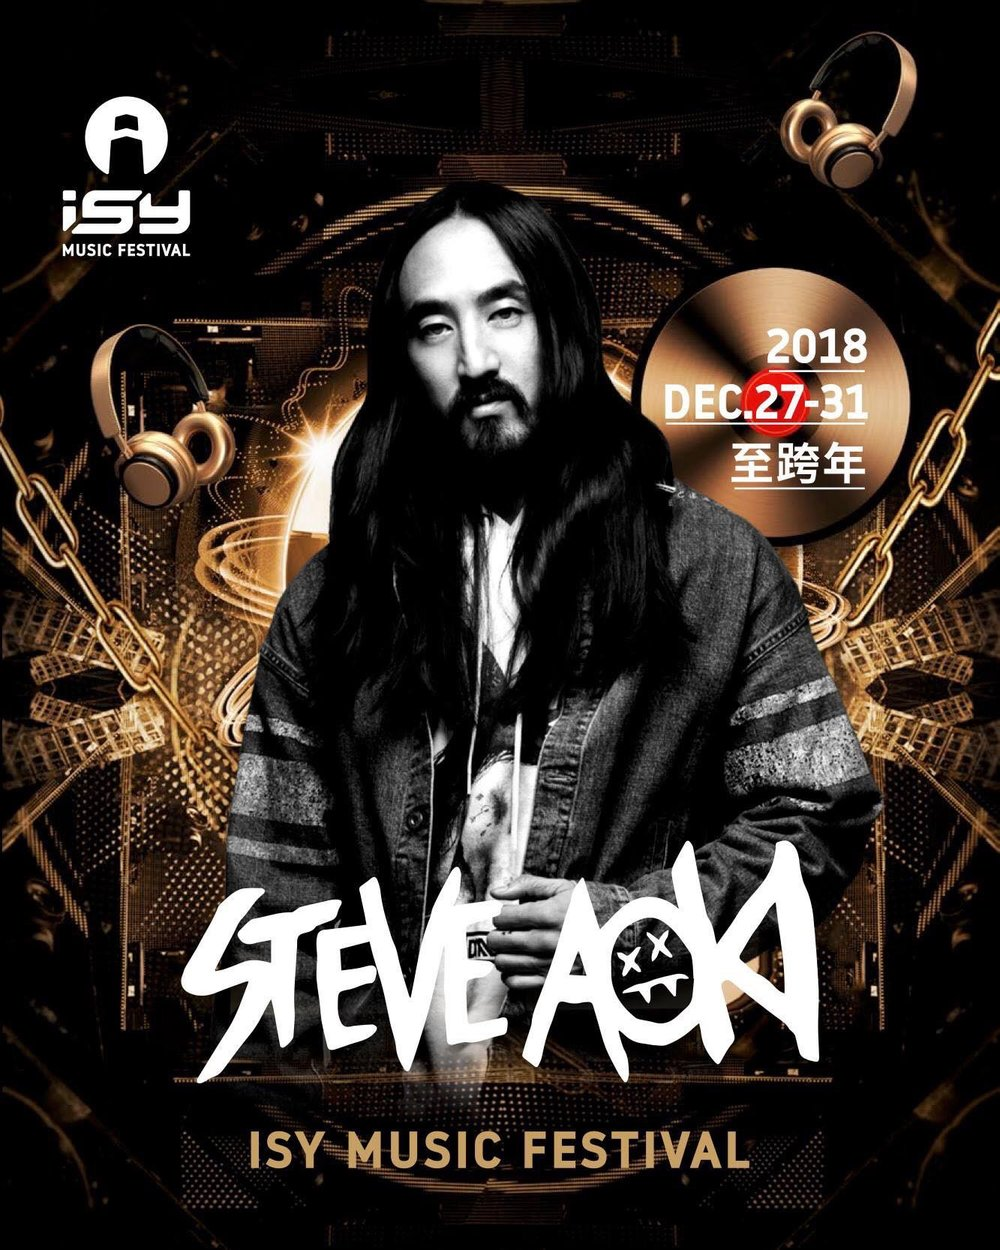 Steve Aoki - American electro house musician, record producer, DJ, and music executive. Also he is well-known for caking people.